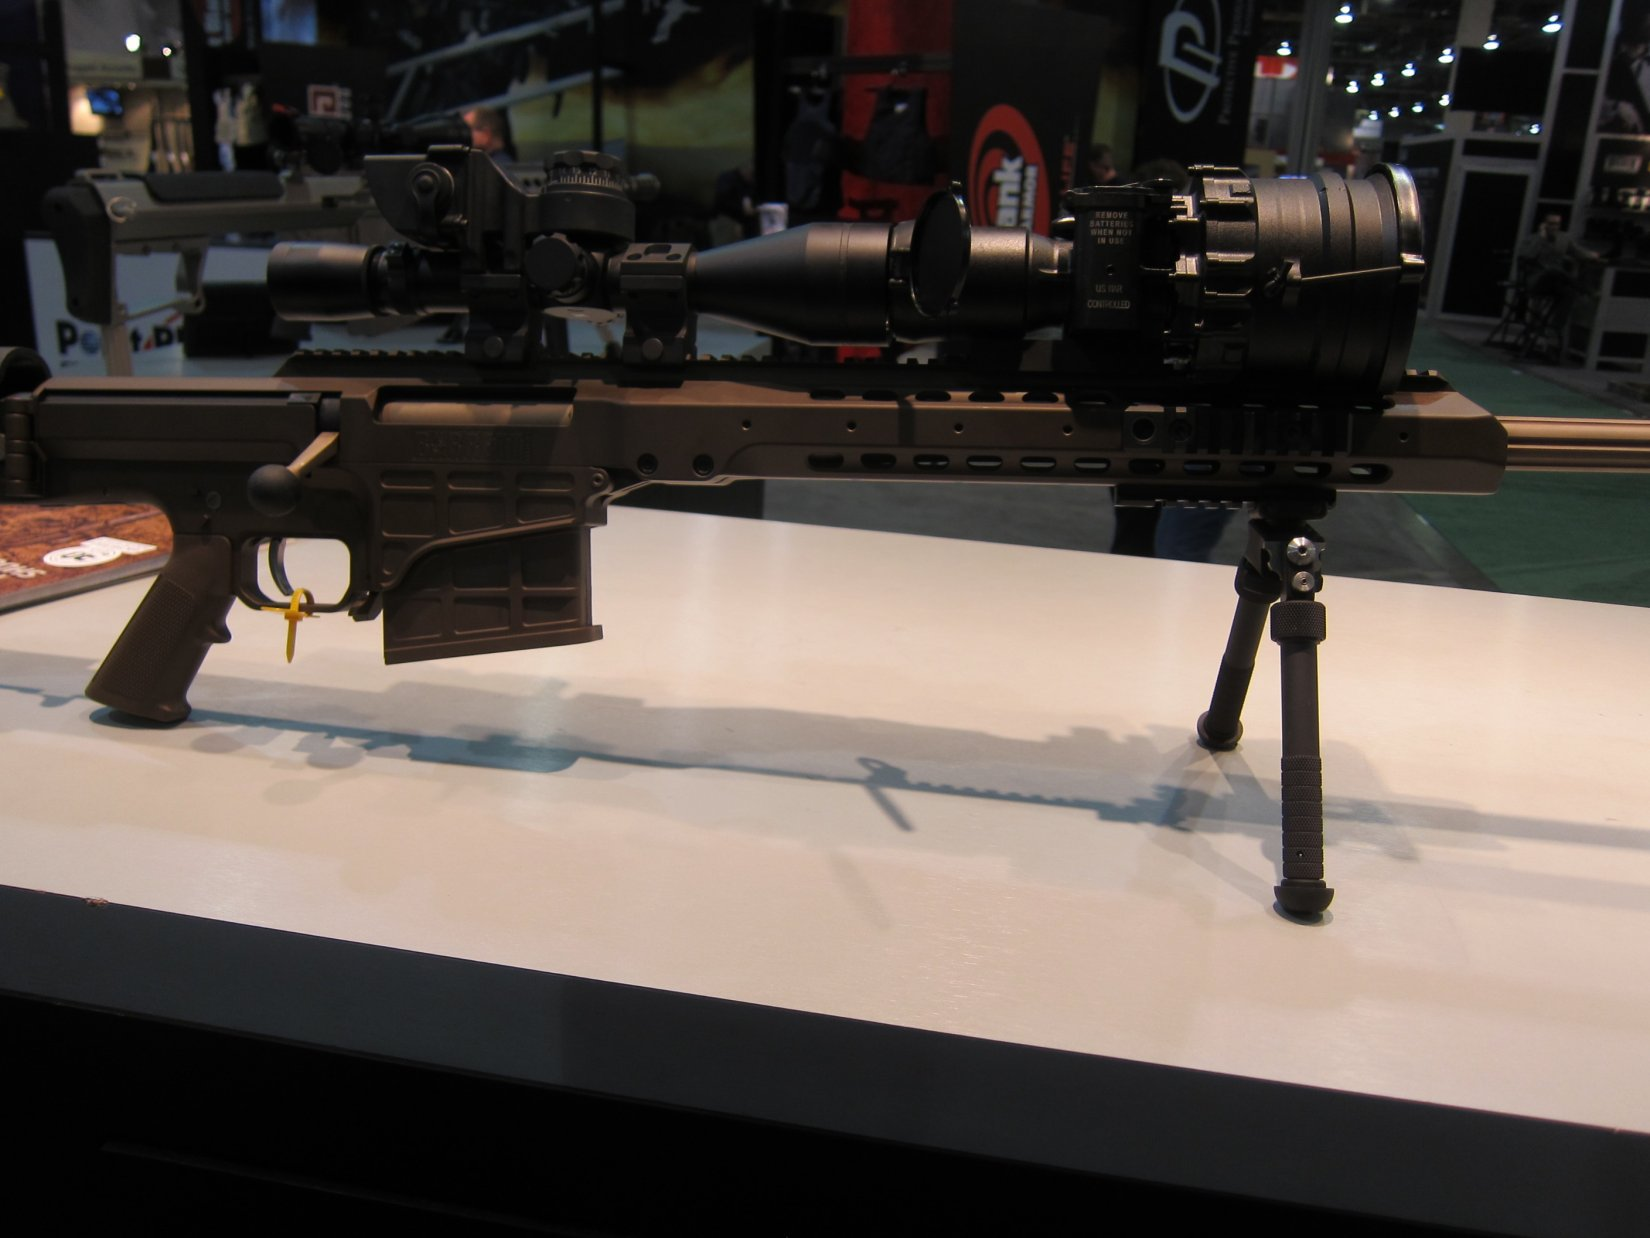 Barrett MRAD Multi Role Adaptive Design Multi Caliber .338 Lapua Magnum Rifle SHOT Show 2012 DefenseReview.com DR 2 Barrett MRAD (Multi Role Adaptive Design) Multi Caliber .338 Lapua Magnum Bolt Action Anti Materiel/Sniper Rifle and G4tv Attack of the Show Crew at SHOT Show 2012 (Video!)